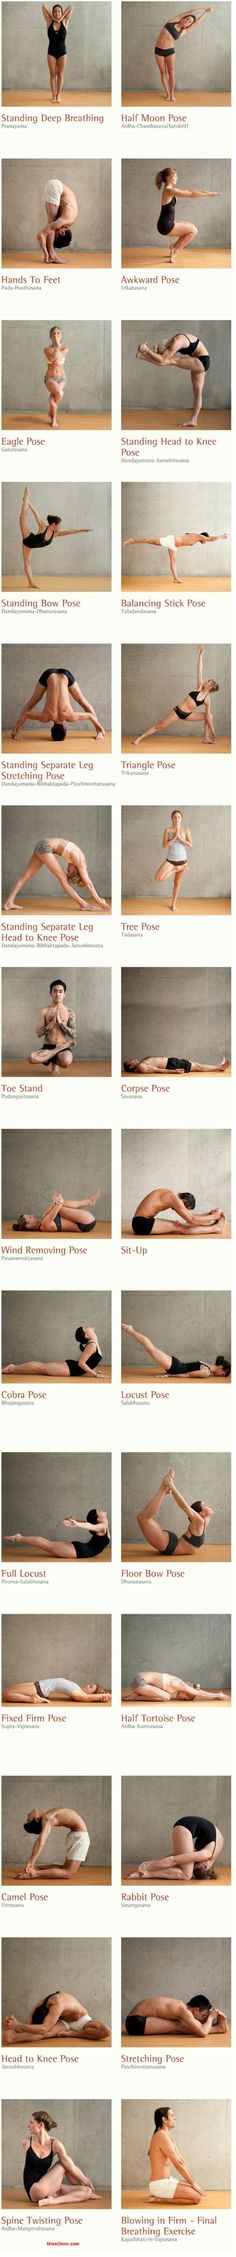 The 26 bikram yoga poses